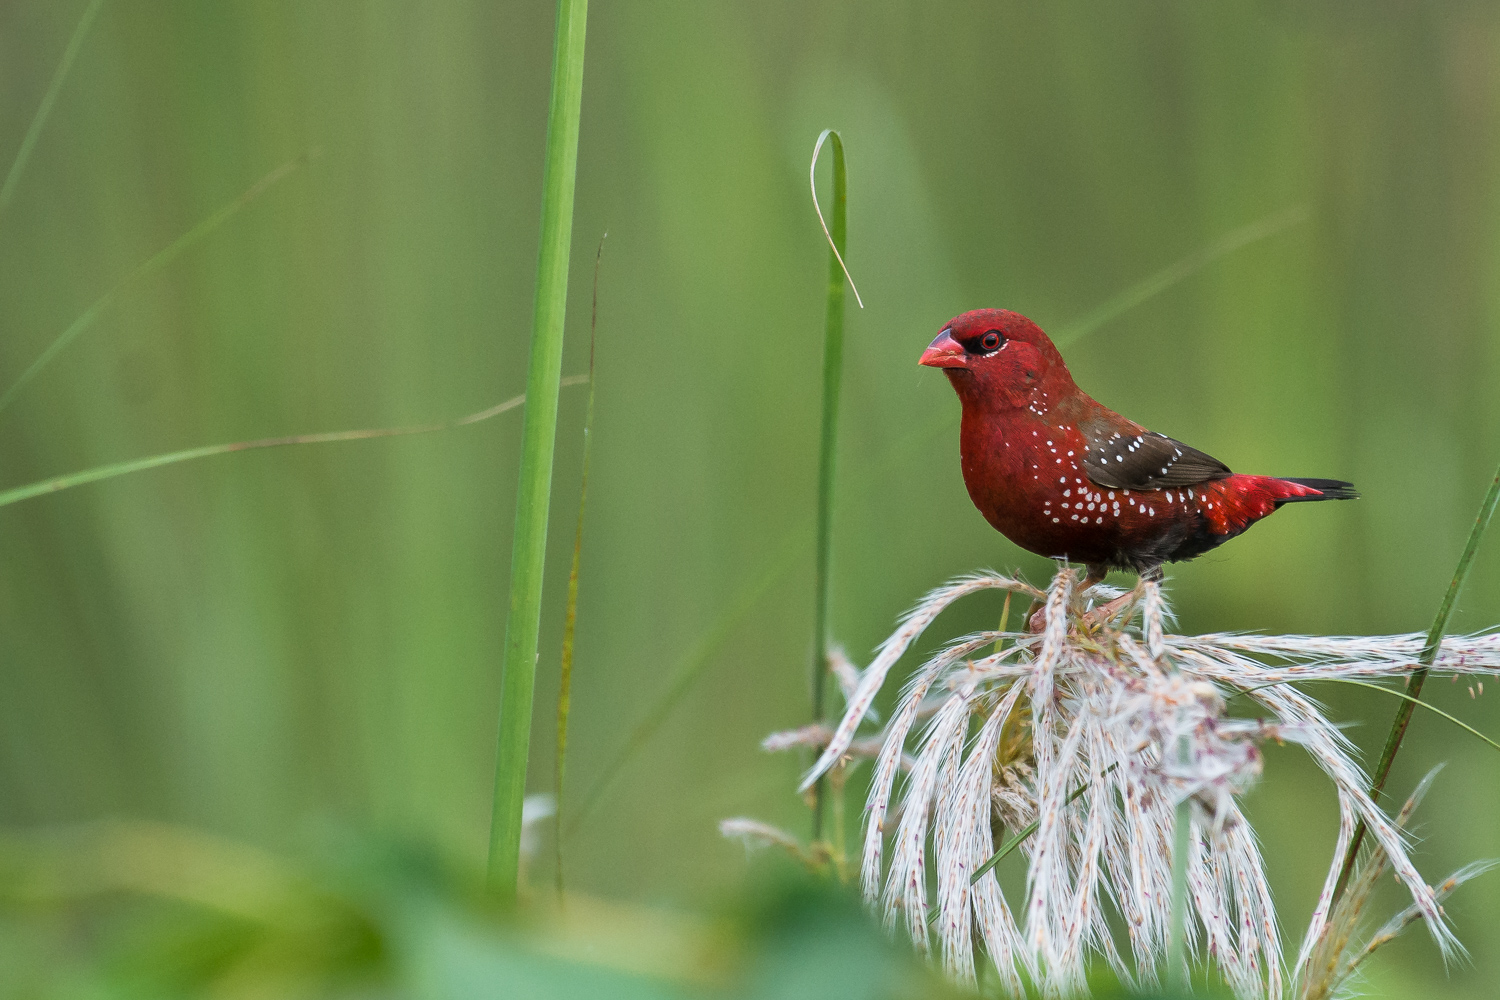 Image: Color Wheel – Red Munia bird against green grass